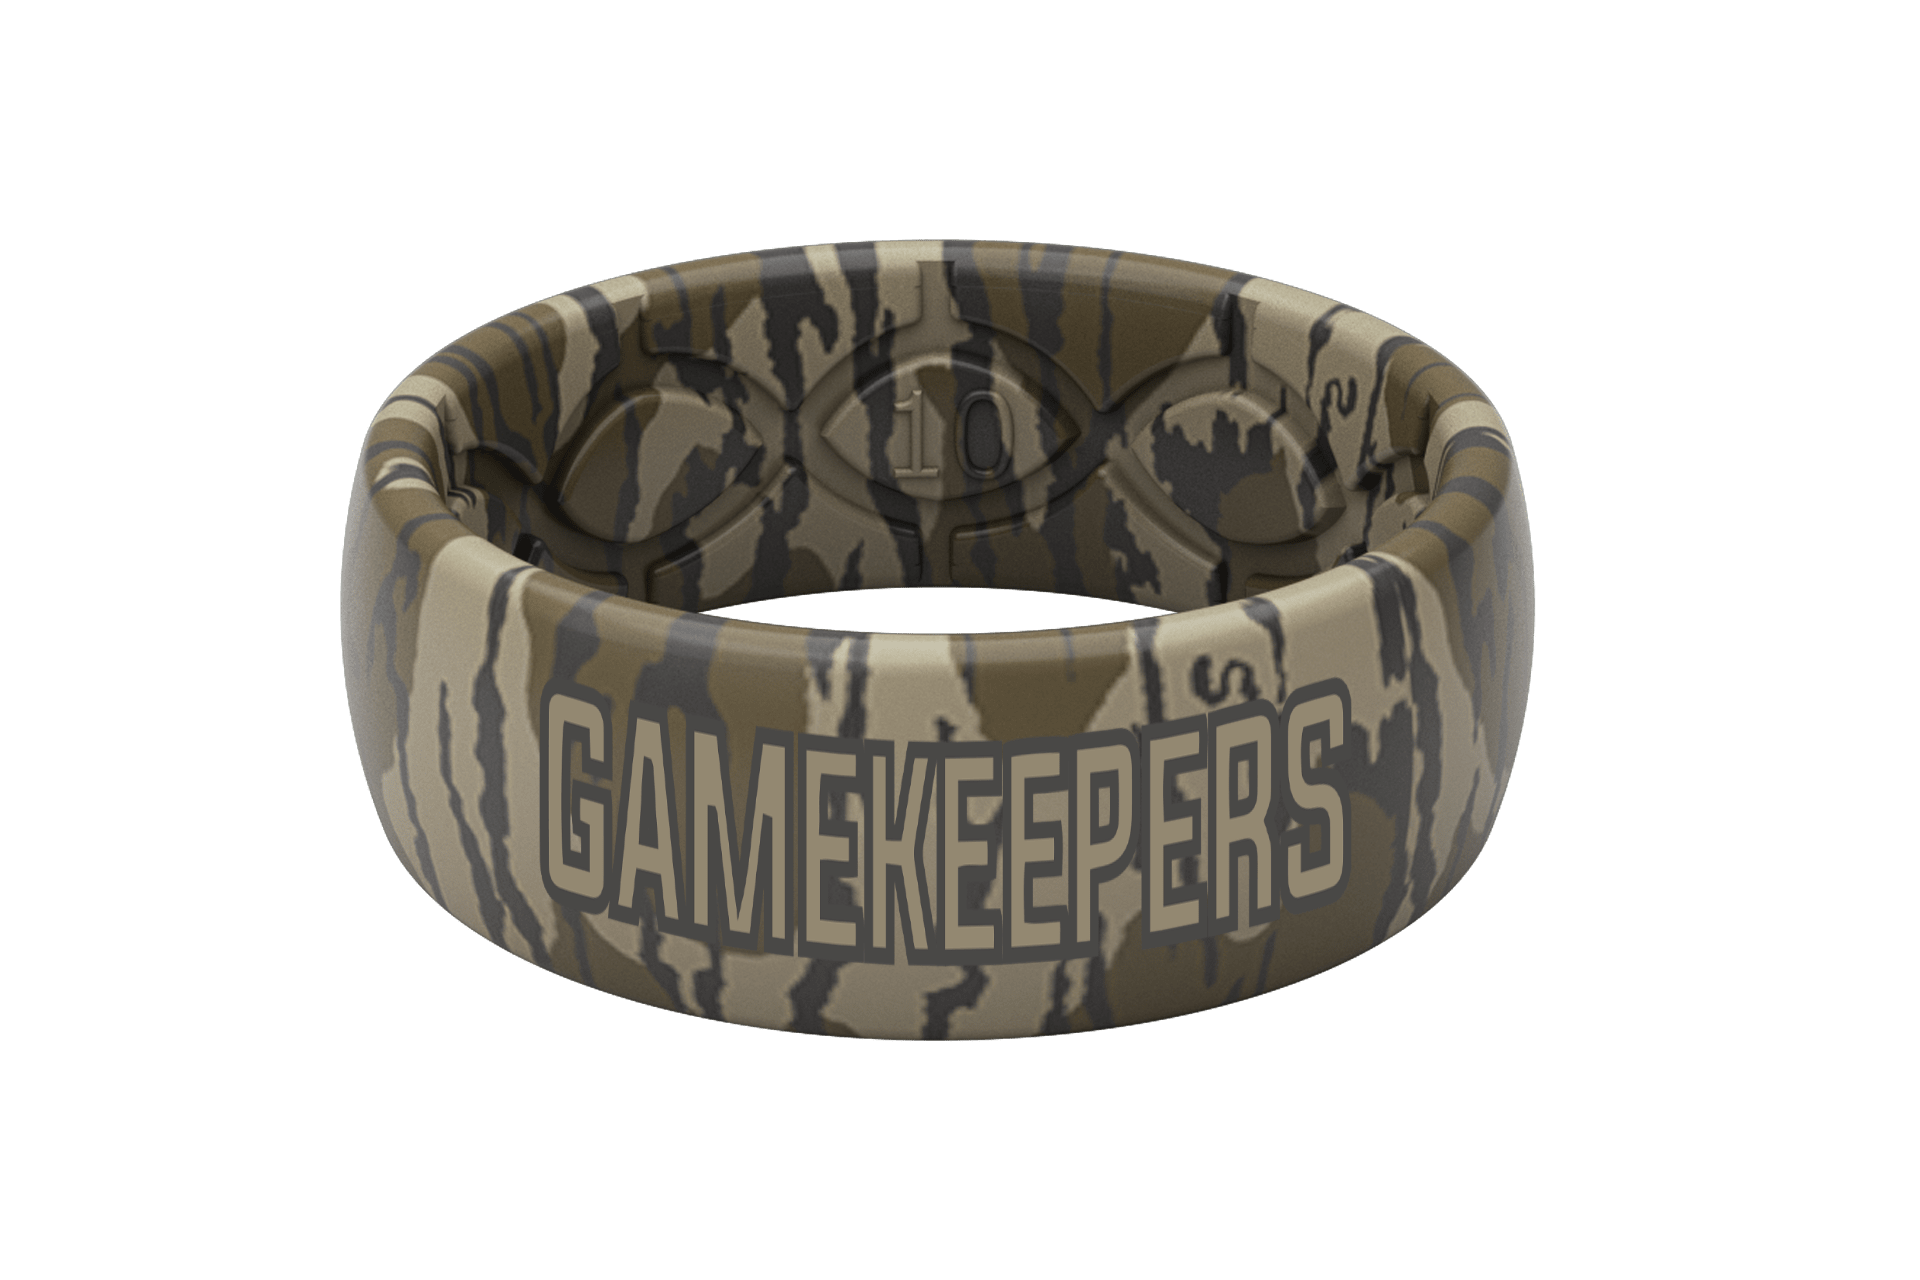 Mossy Oak Gamekeepers Camo ring viewed front on